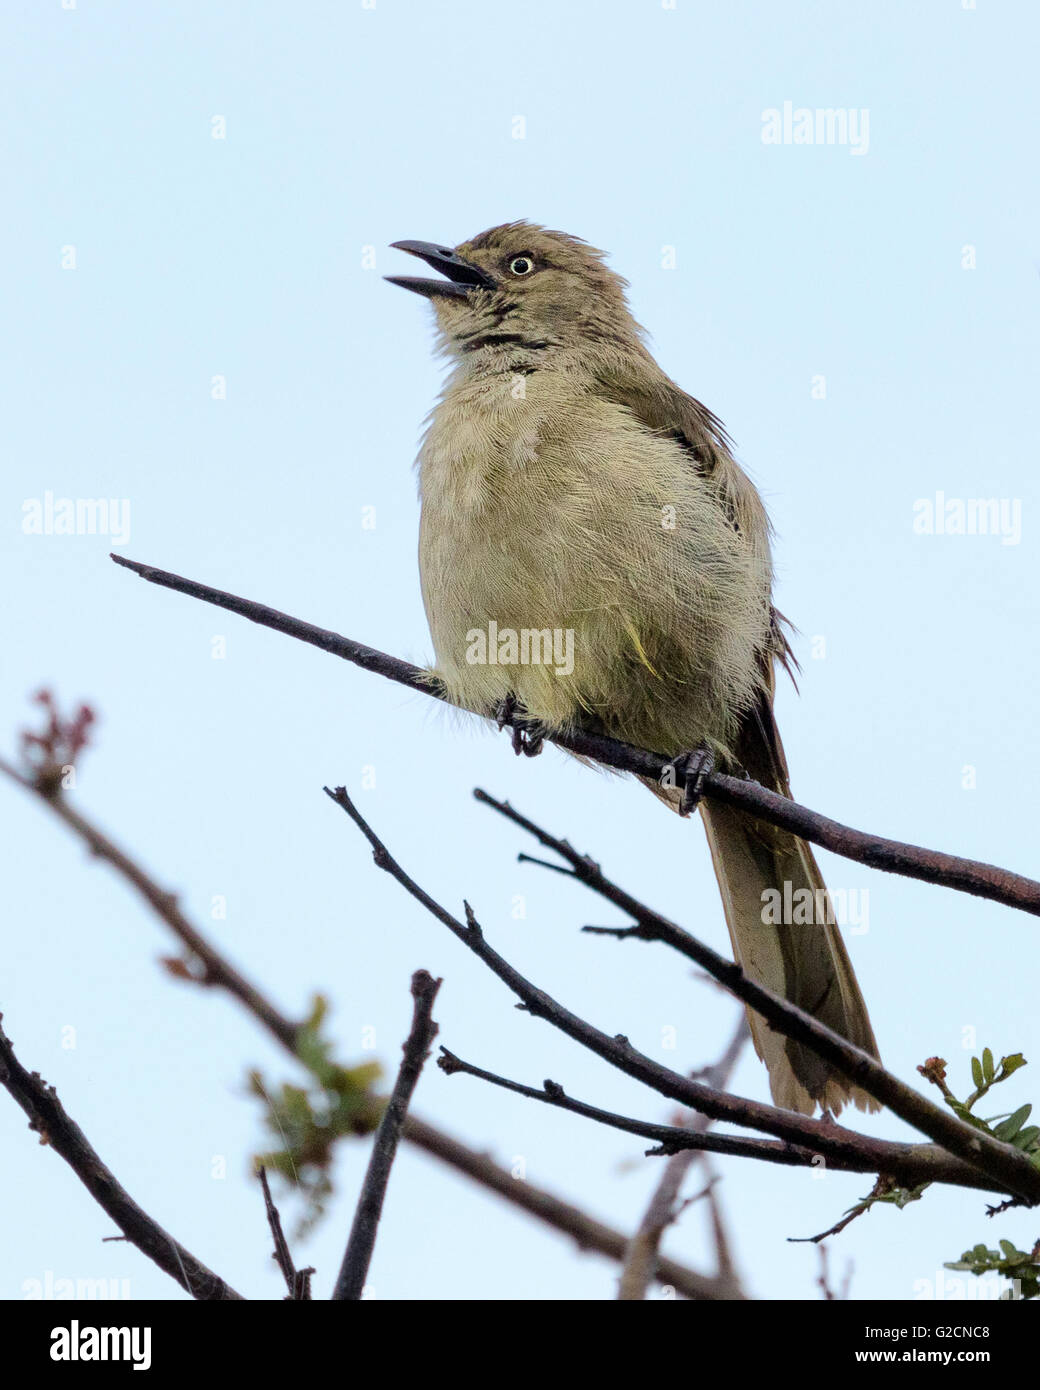 The Fiscal Flycatcher (Melaenornis silens) Singing - Stock Image